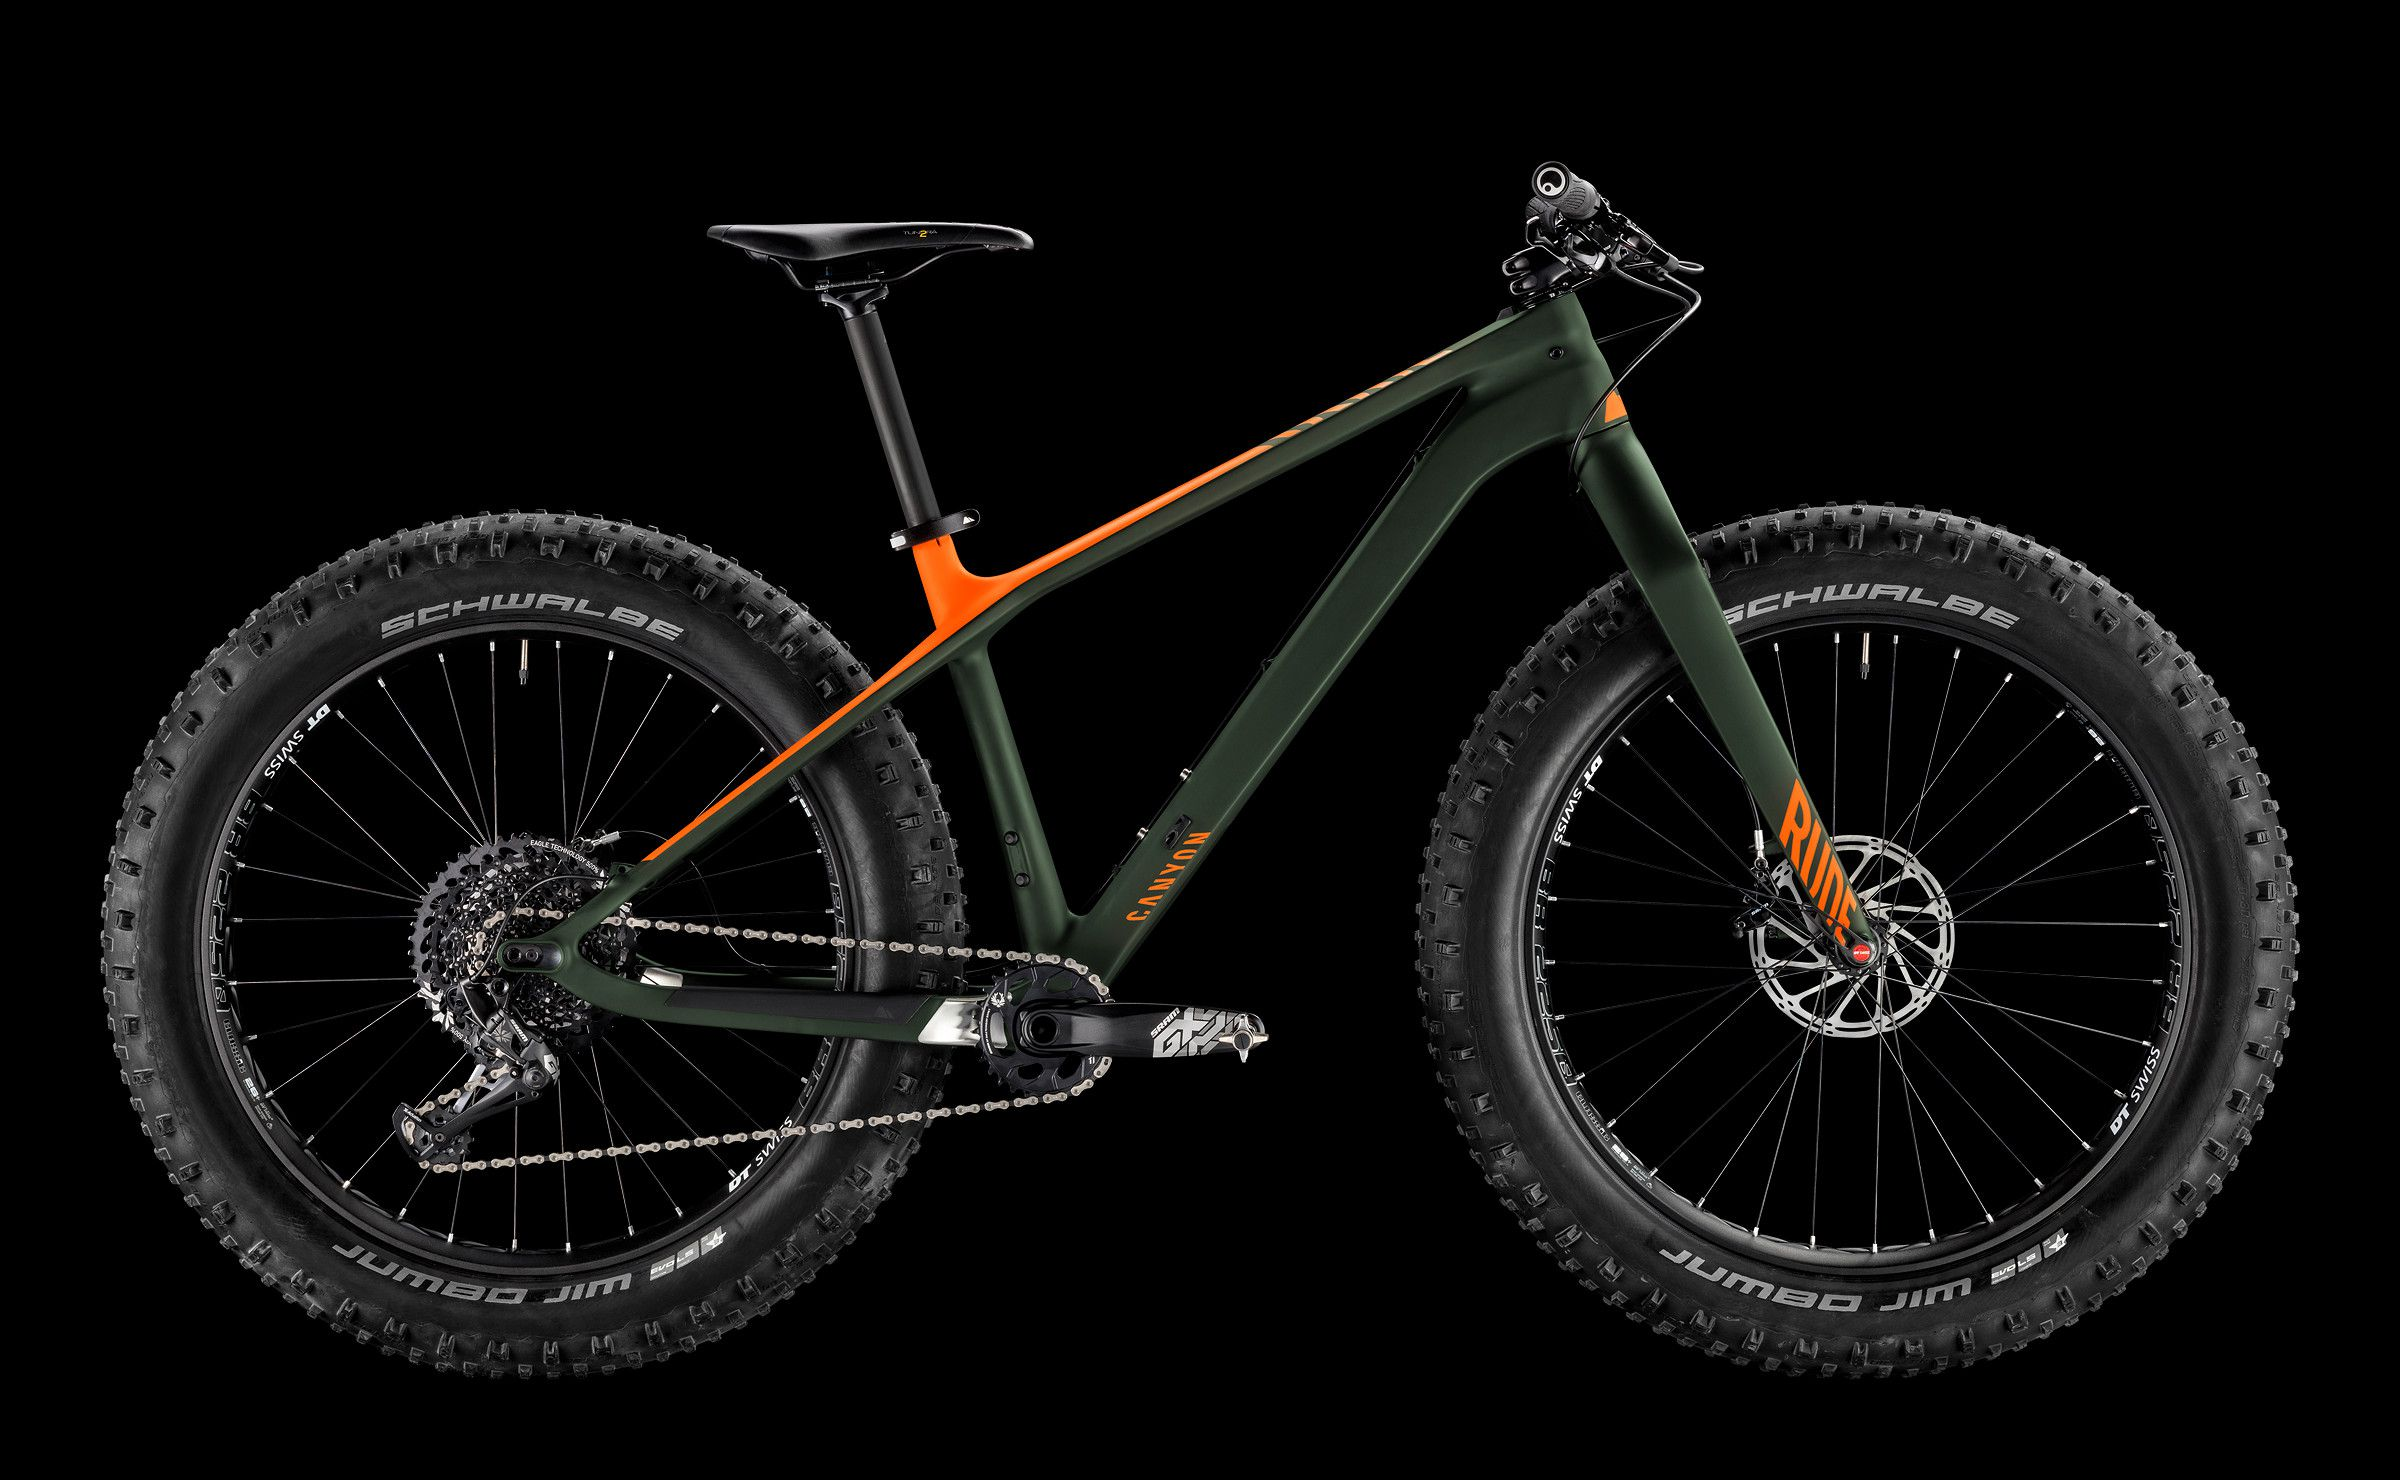 Canyon Dude 2018 CF 9.0 unlimited